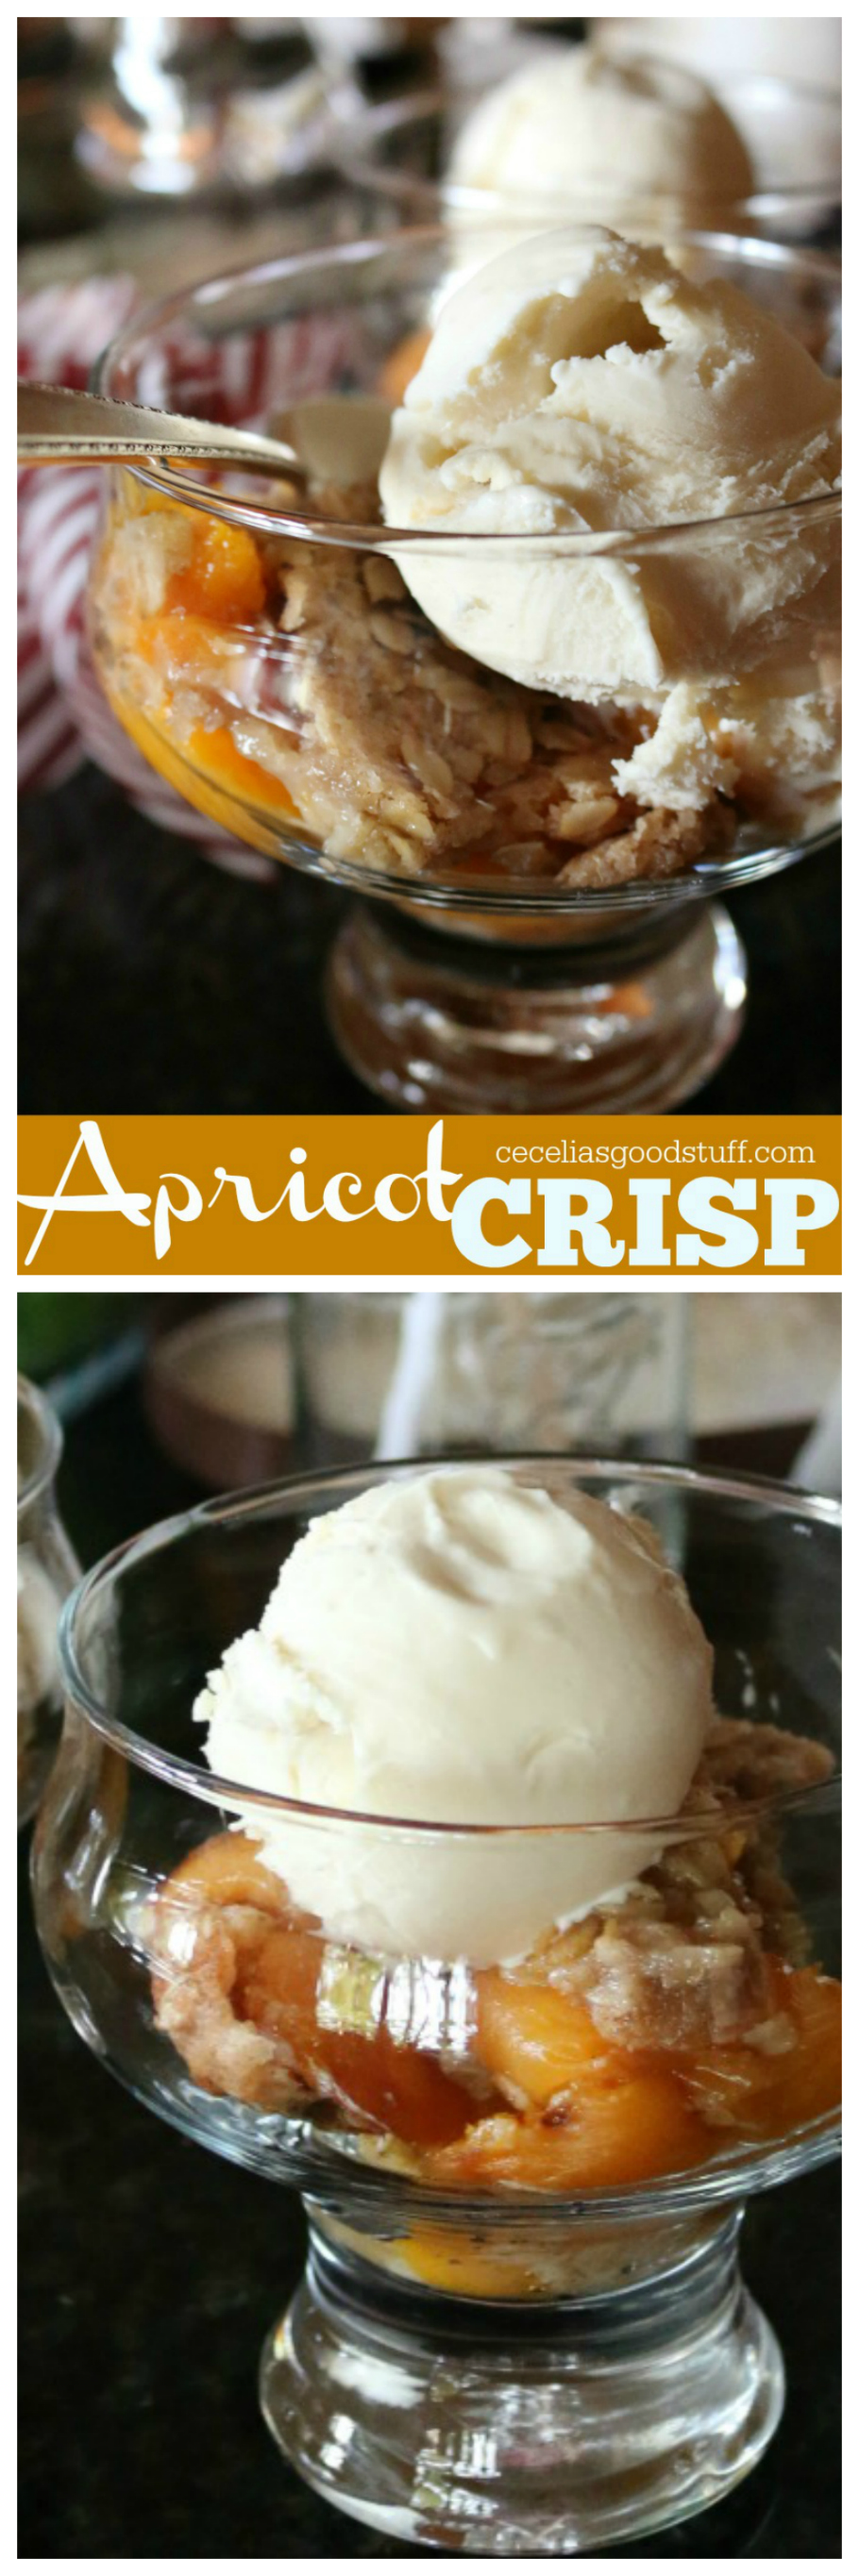 A favorite summer recipe for Apricot Crisp | CeceliasGoodStuff.com | Good Food for Good People